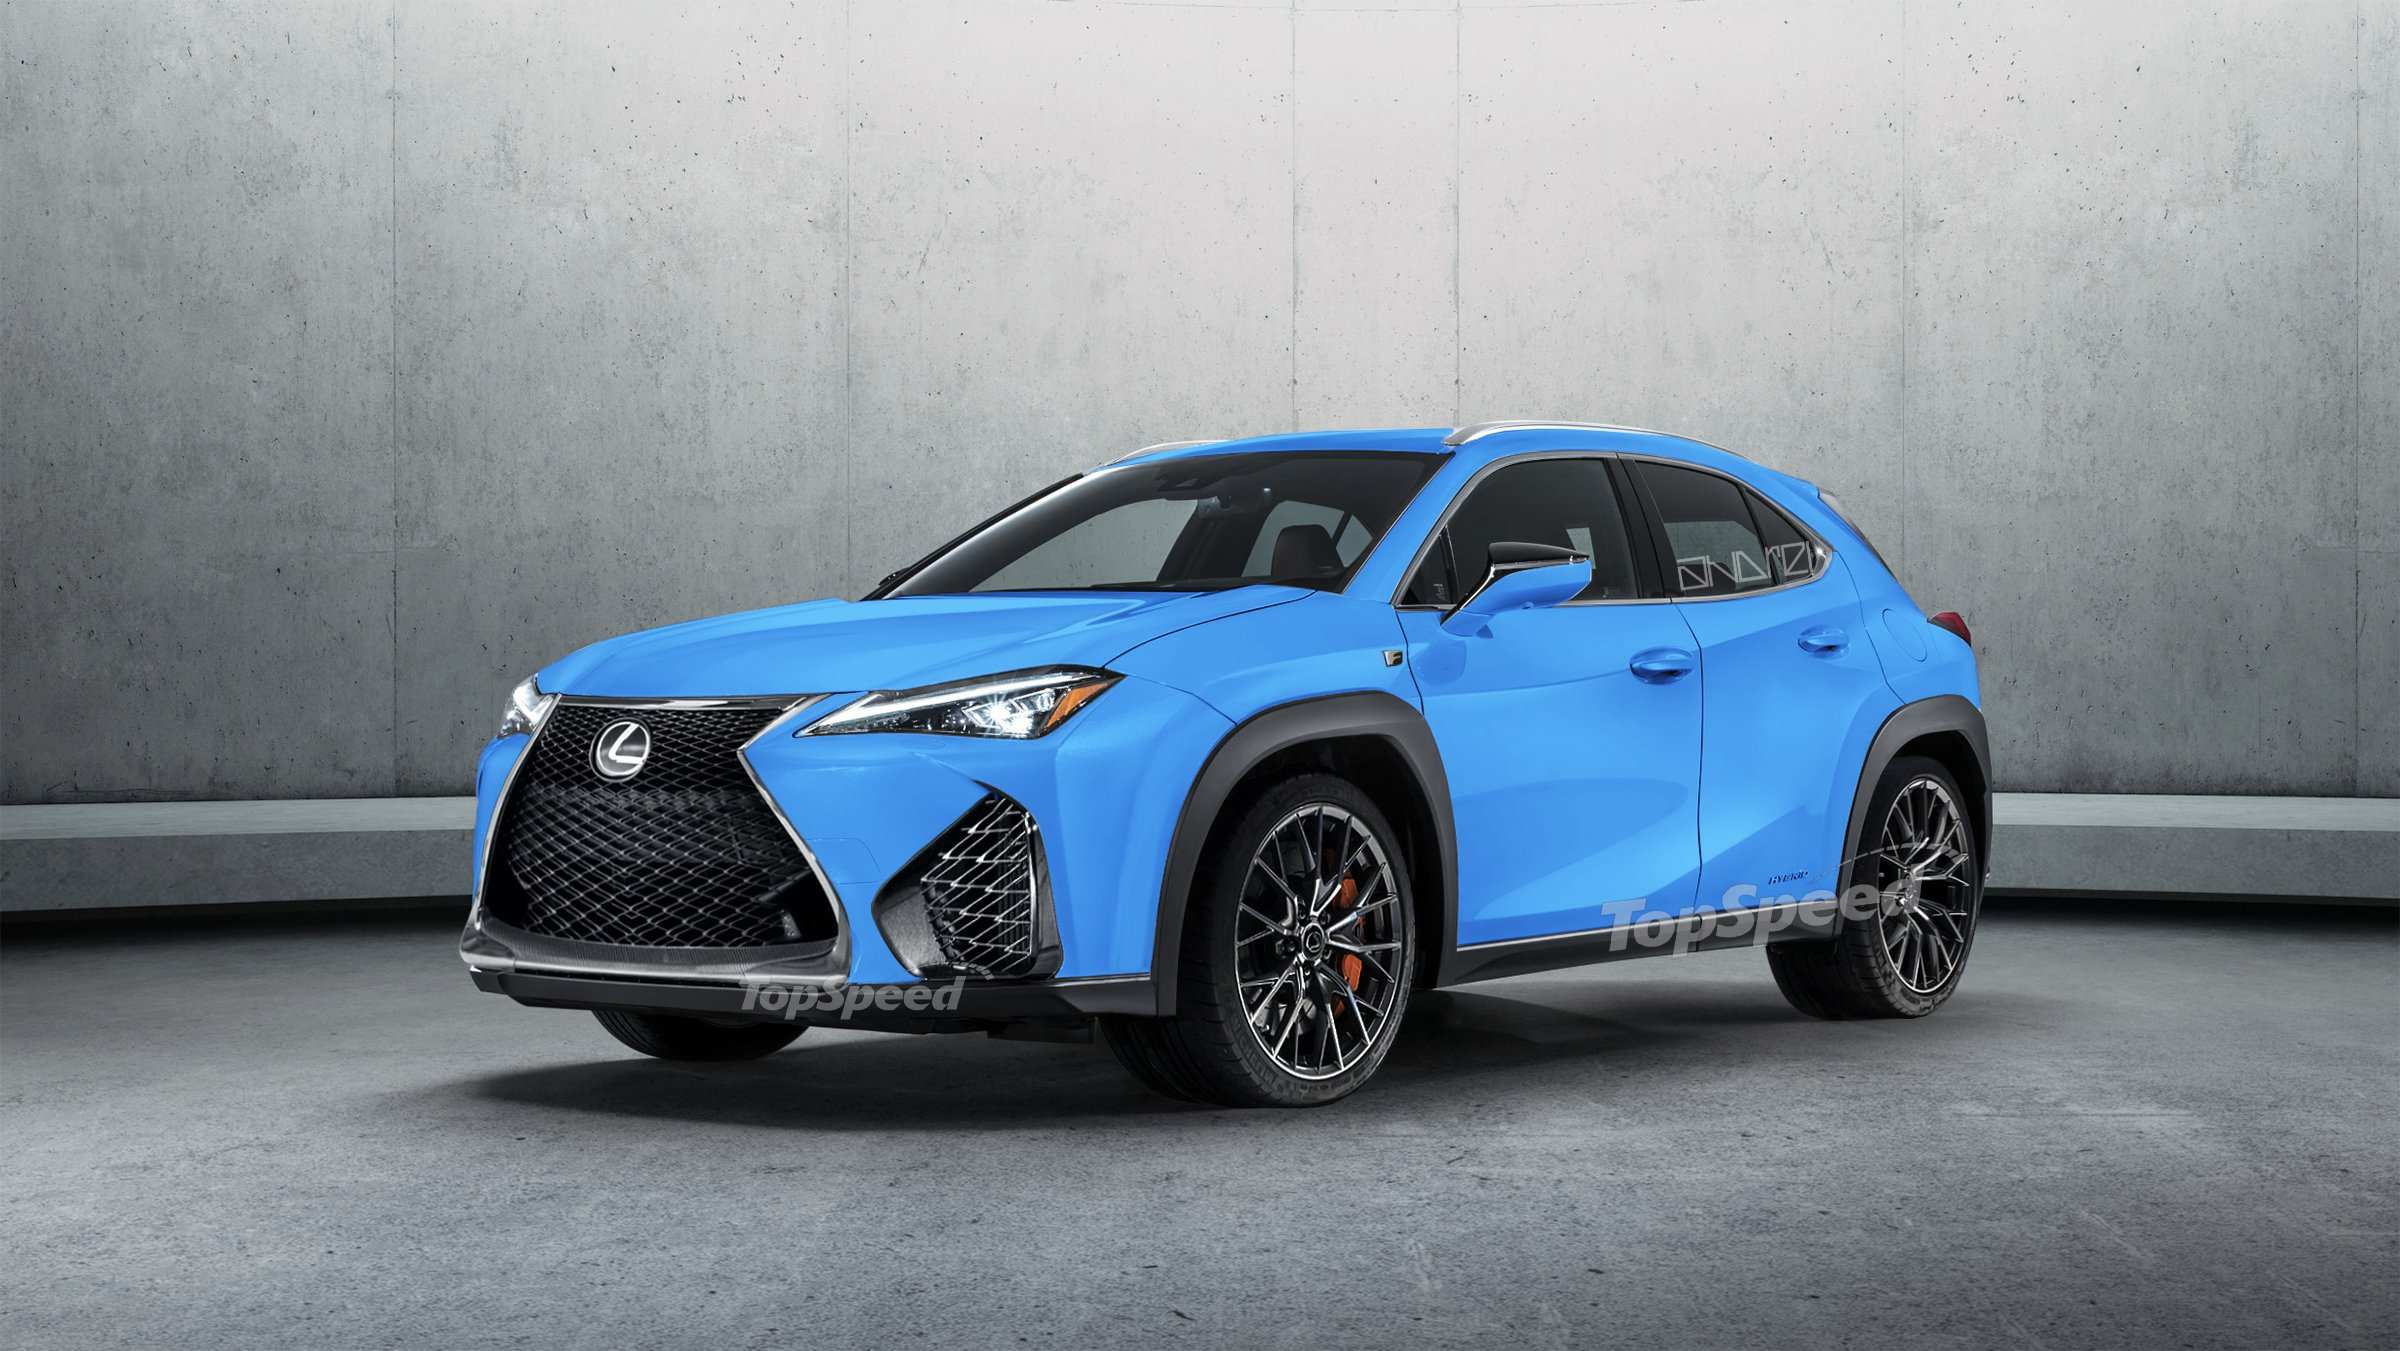 54 The Best 2020 Lexus Ux 250H First Drive